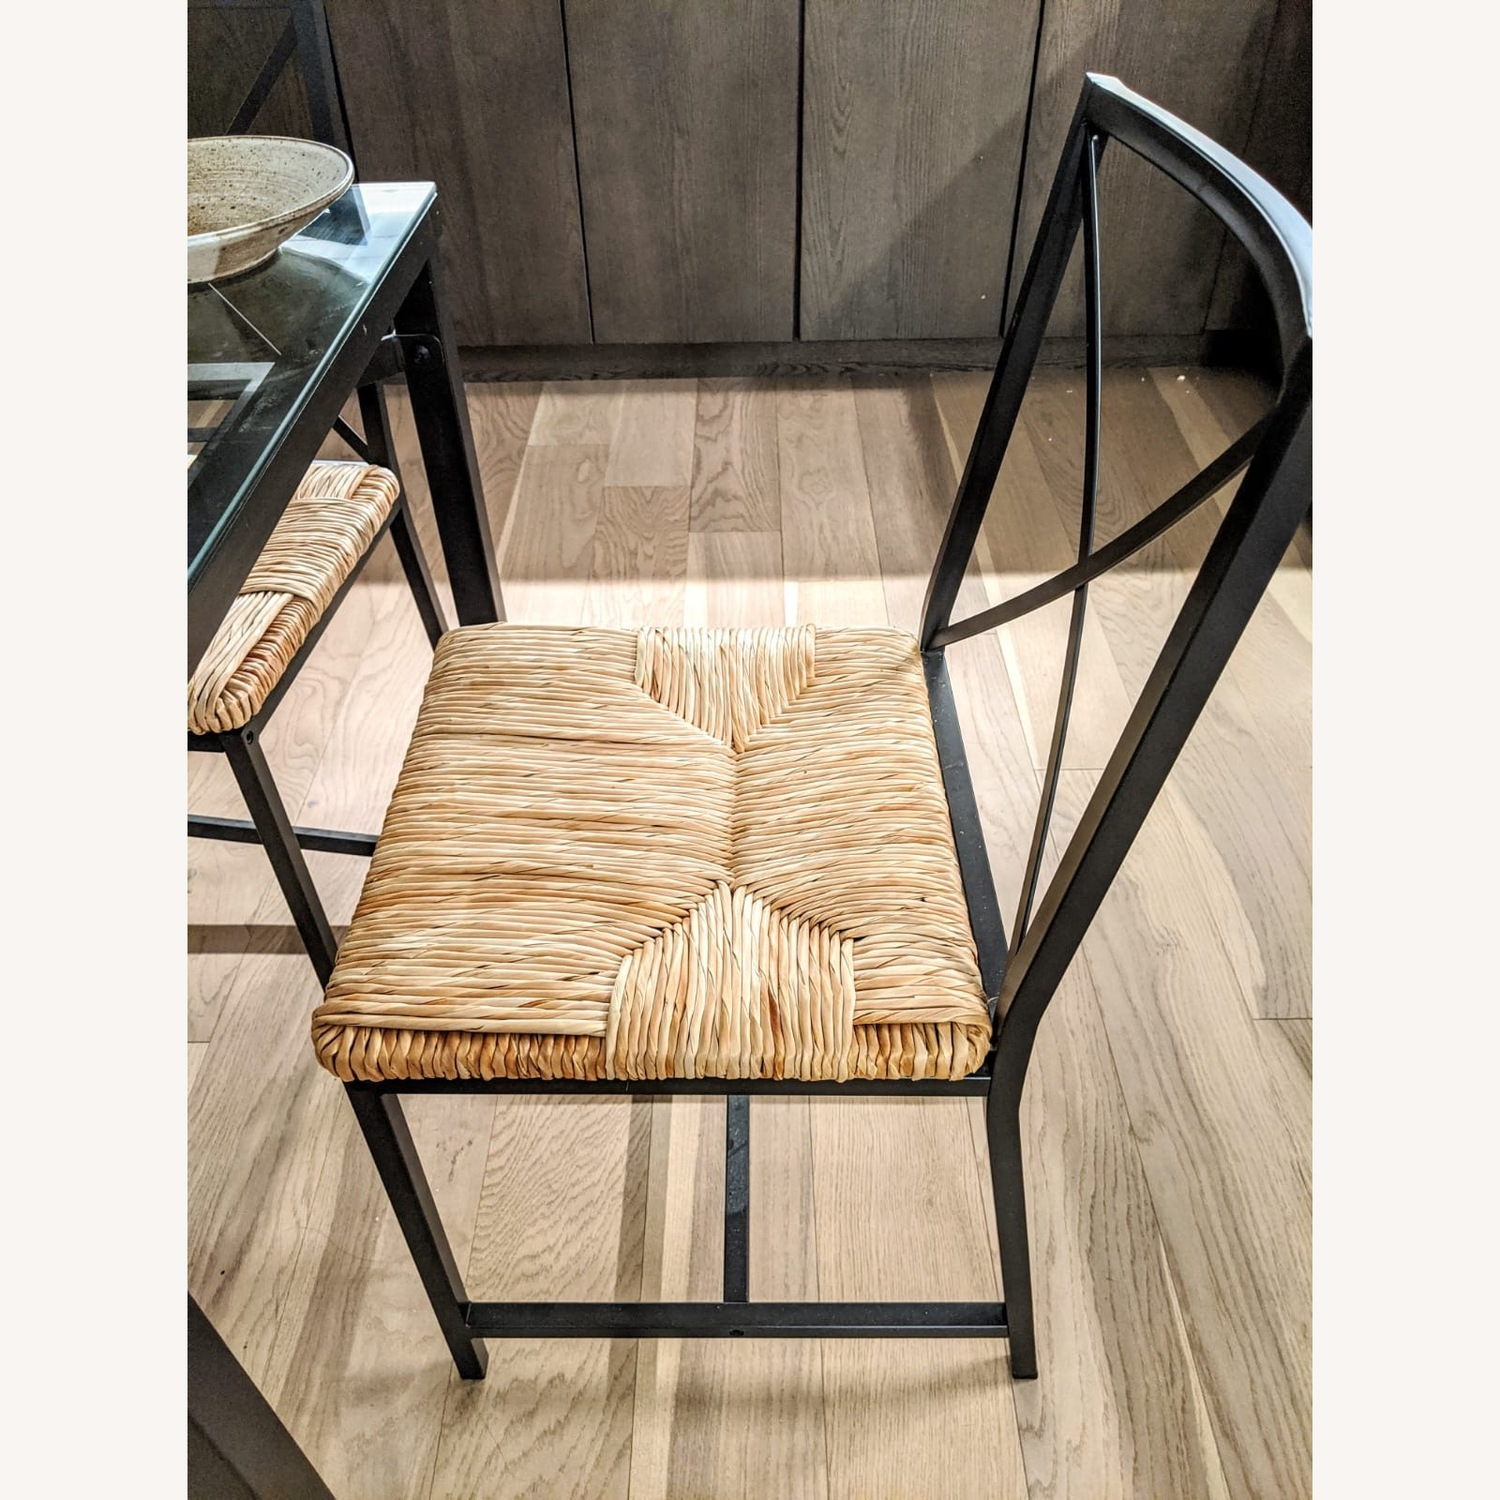 IKEA Granas Dining Table with Four Chairs